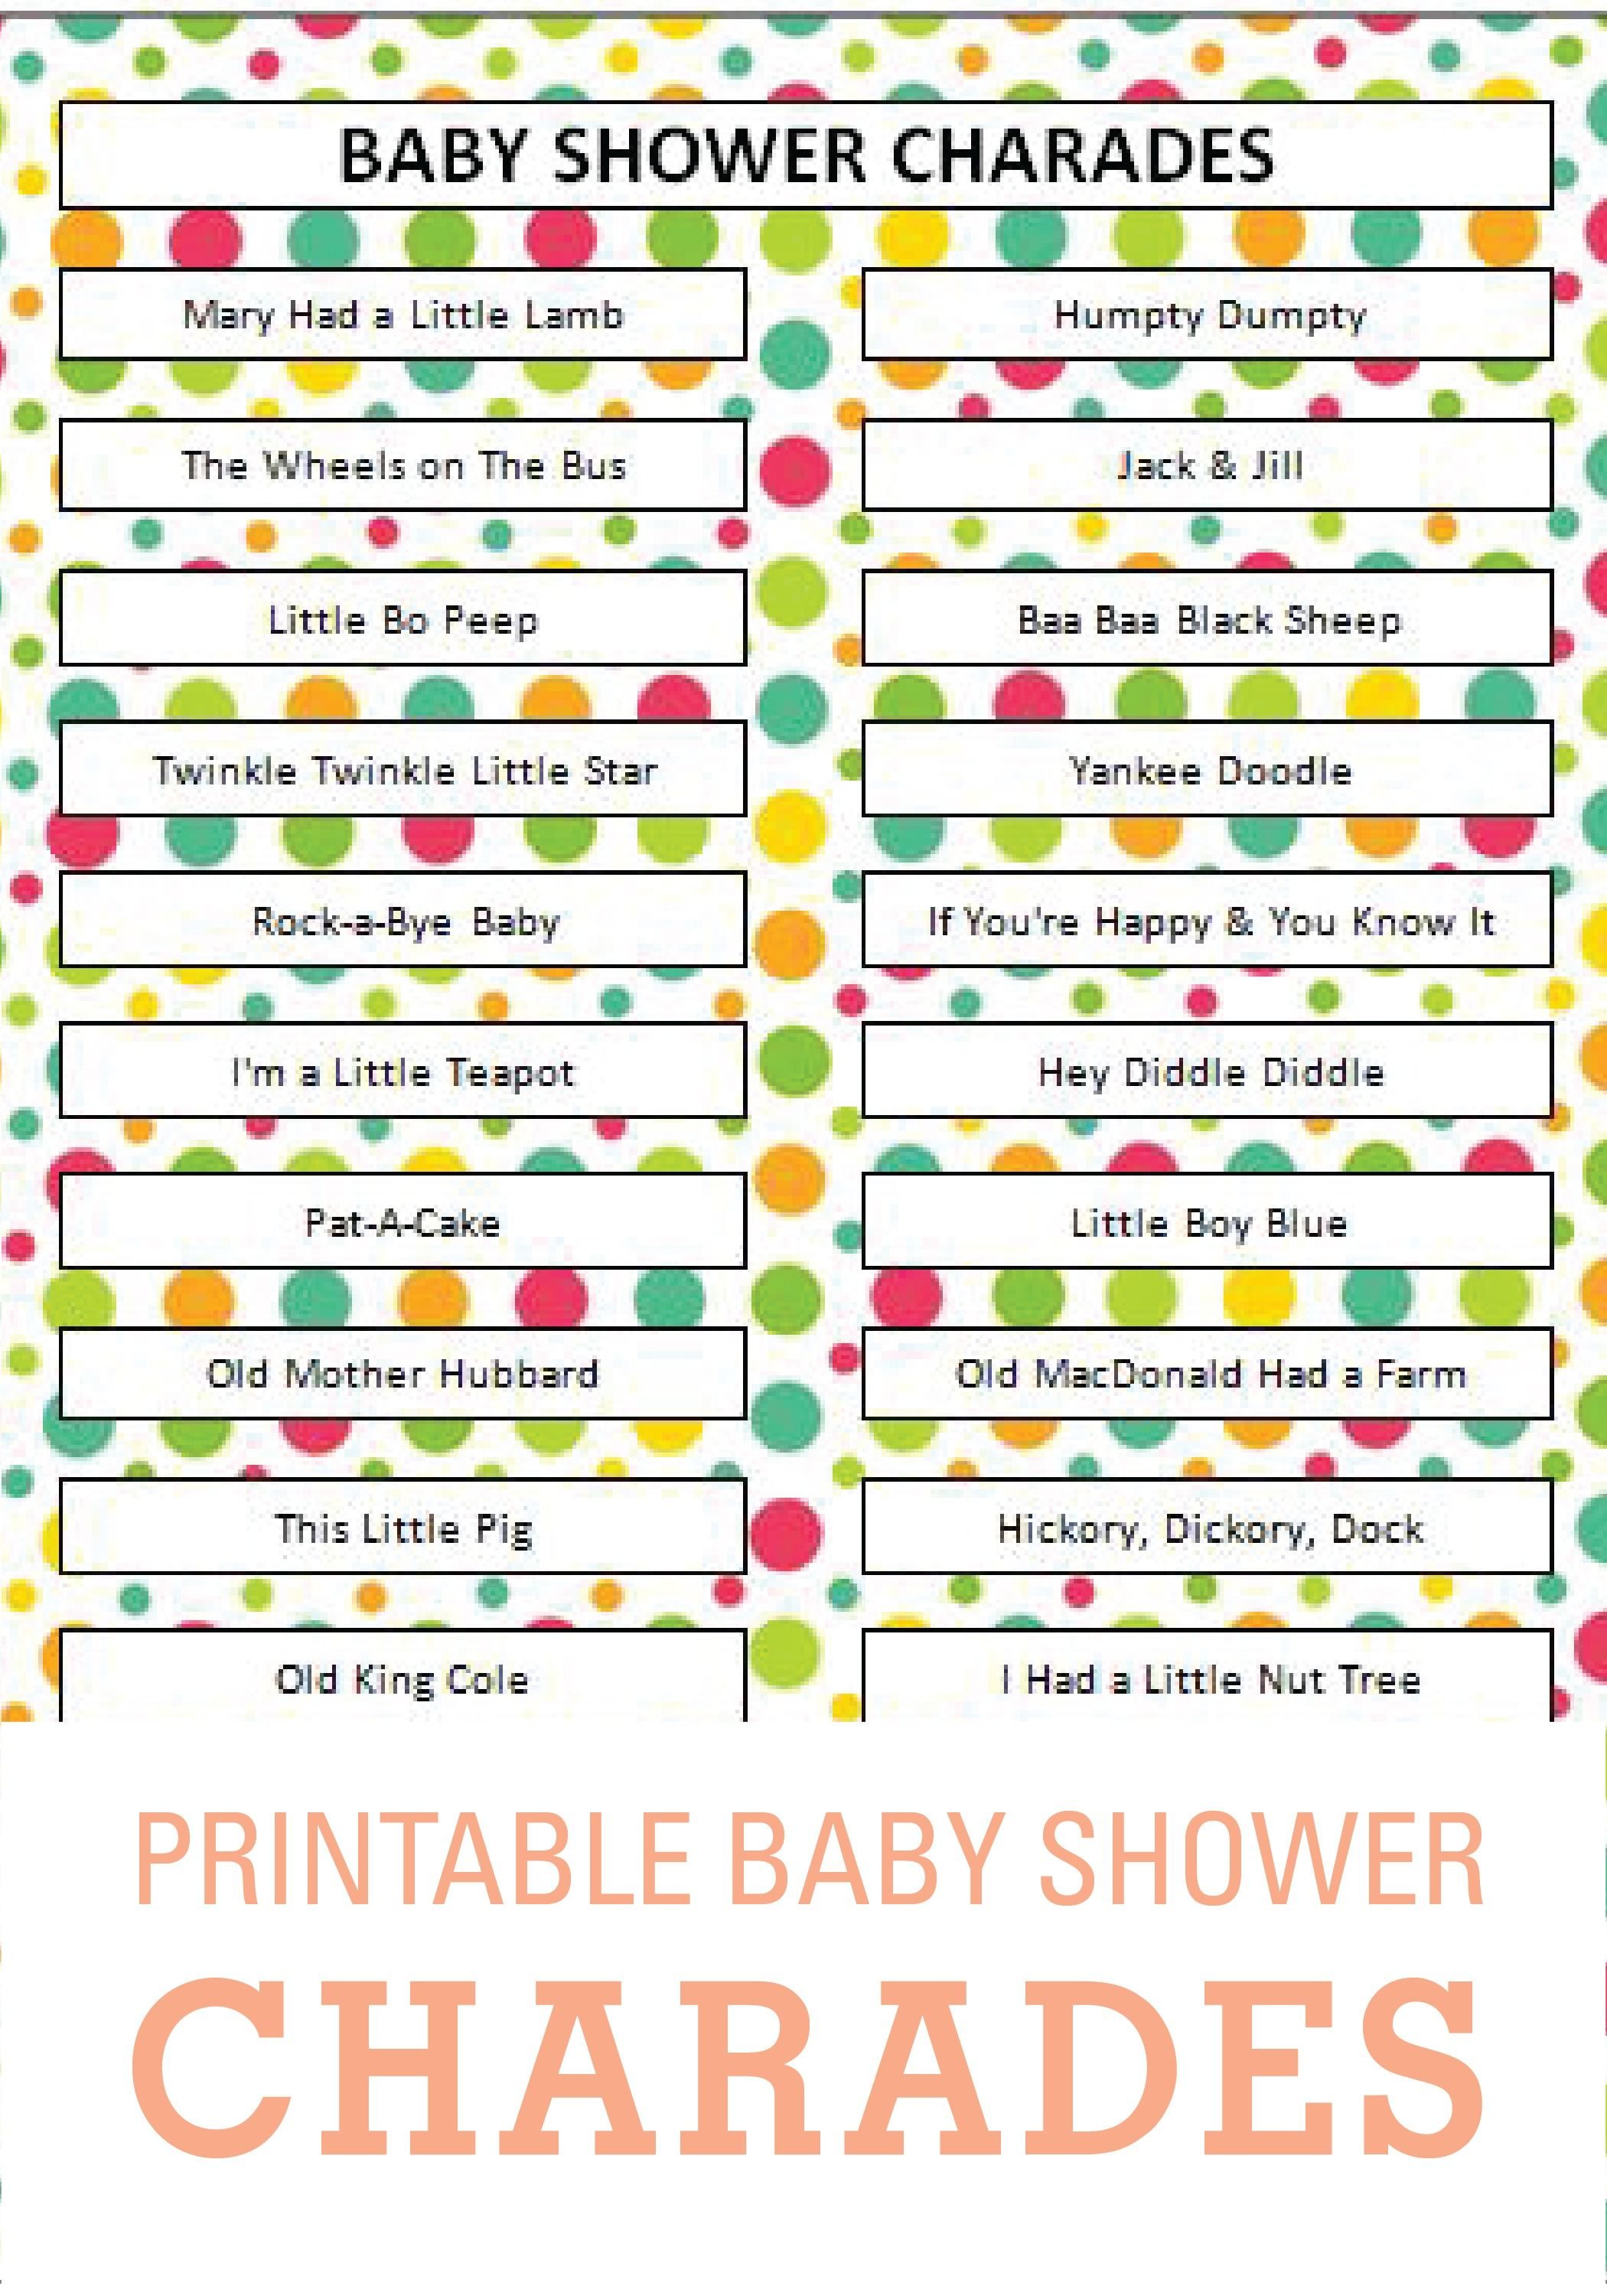 Printable Charades Is The Perfect Baby Shower Game!